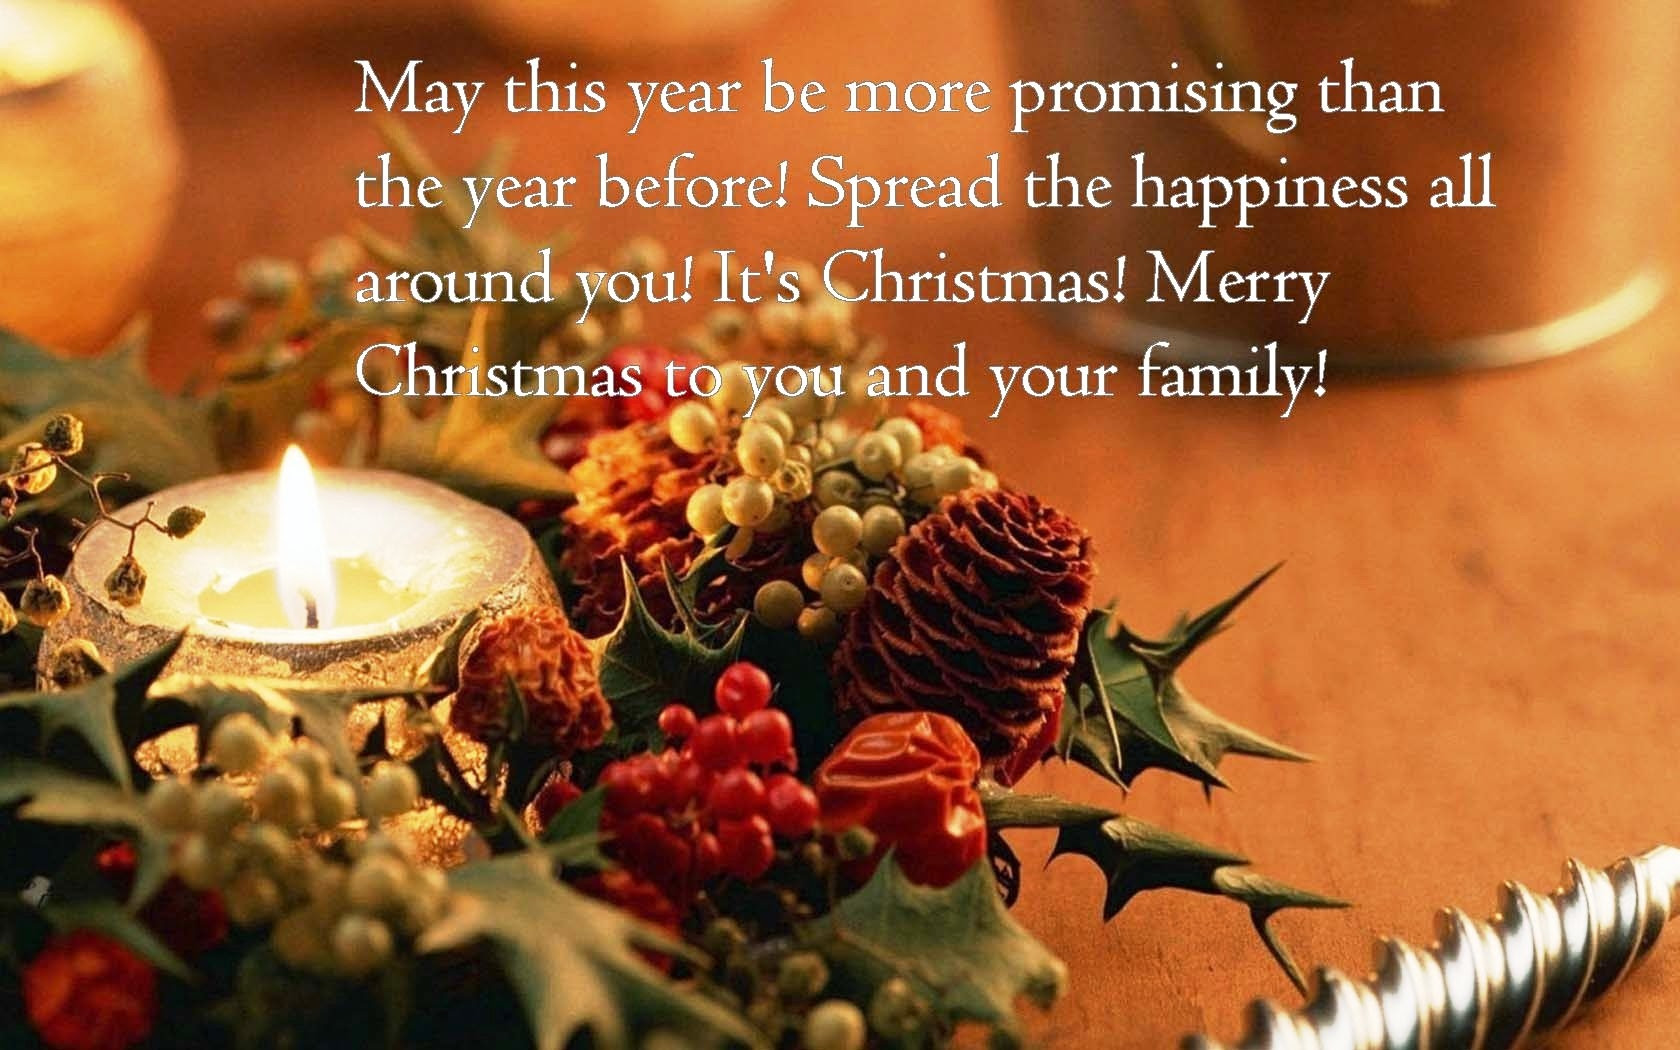 Merry Christmas To You And Your Family Pictures Photos And Images